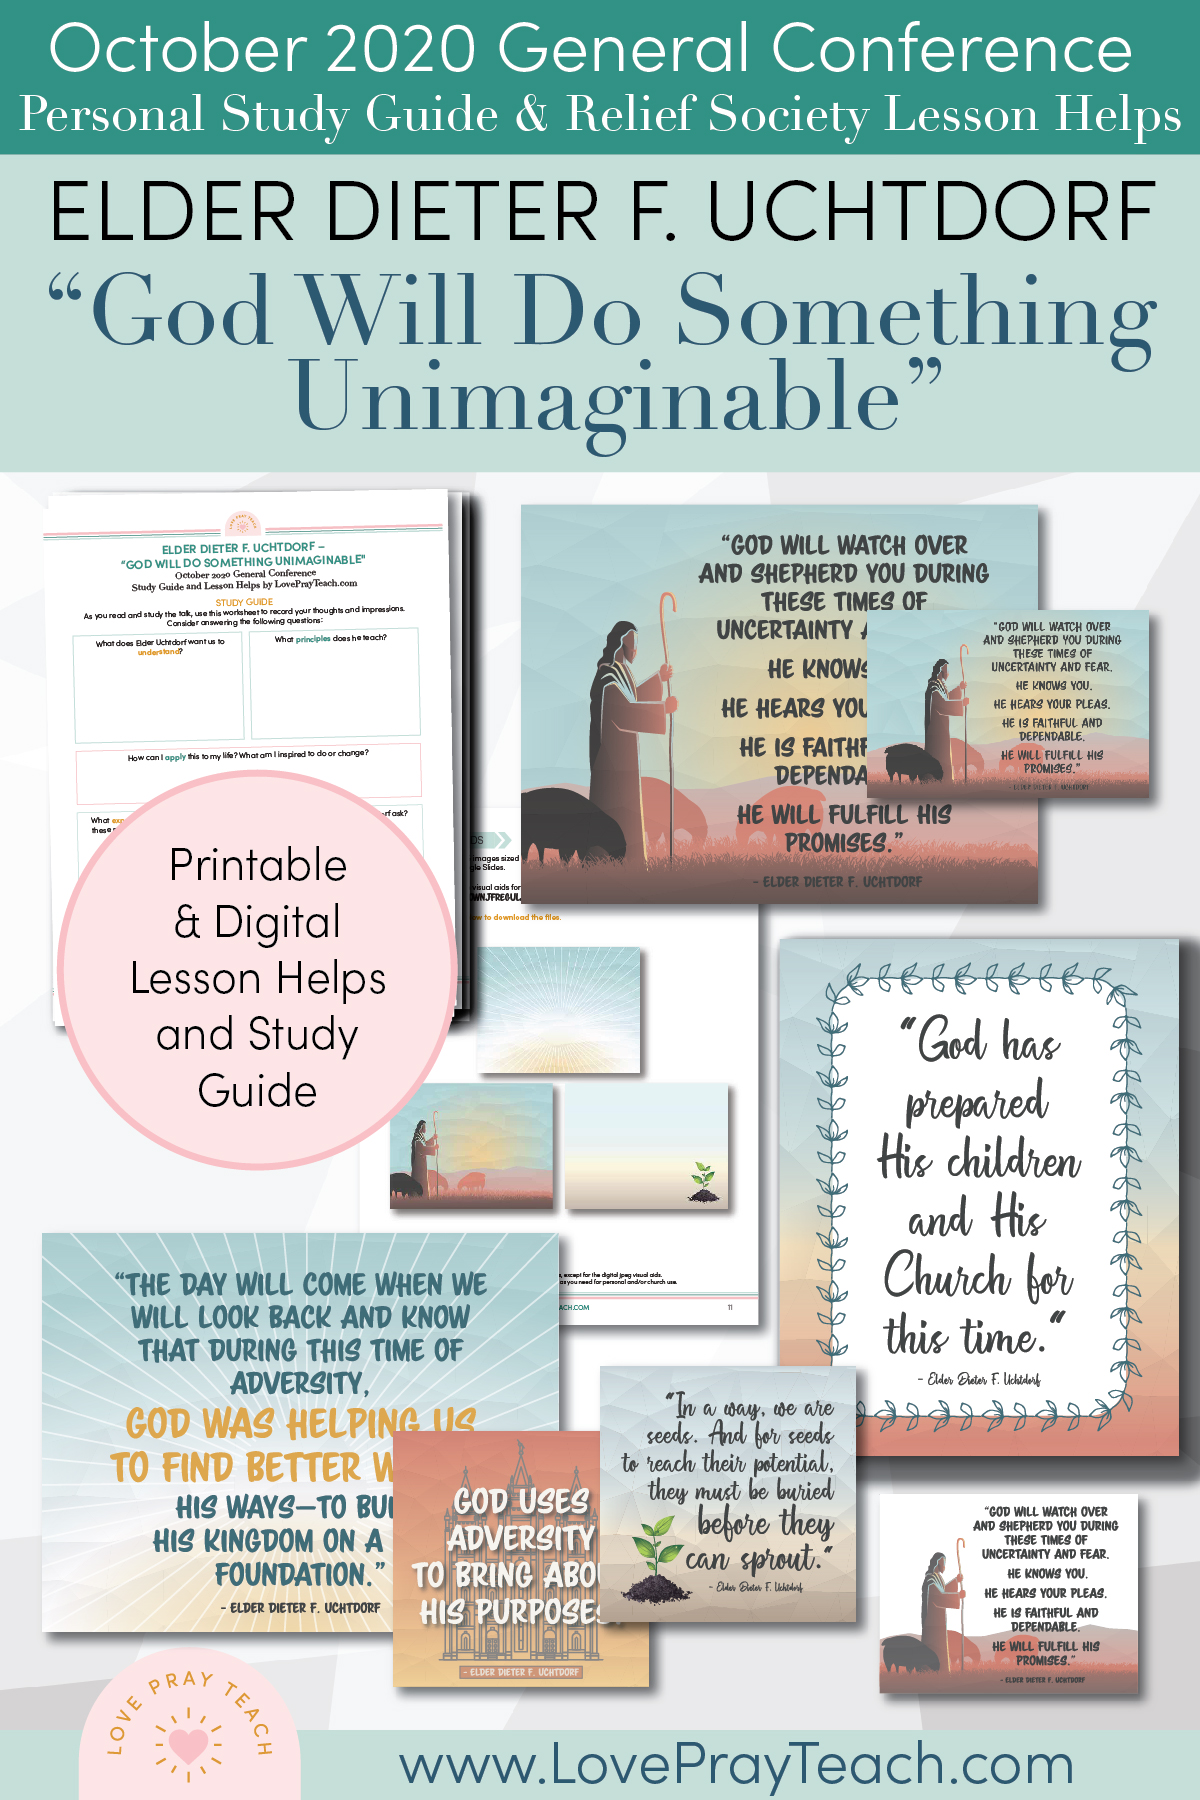 "October 2020 General Conference: Elder Dieter F. Uchtdorf - ""God Will Do Something Unimaginable"" Printable Study Guide and Lesson Helps for Latter-day Saints"